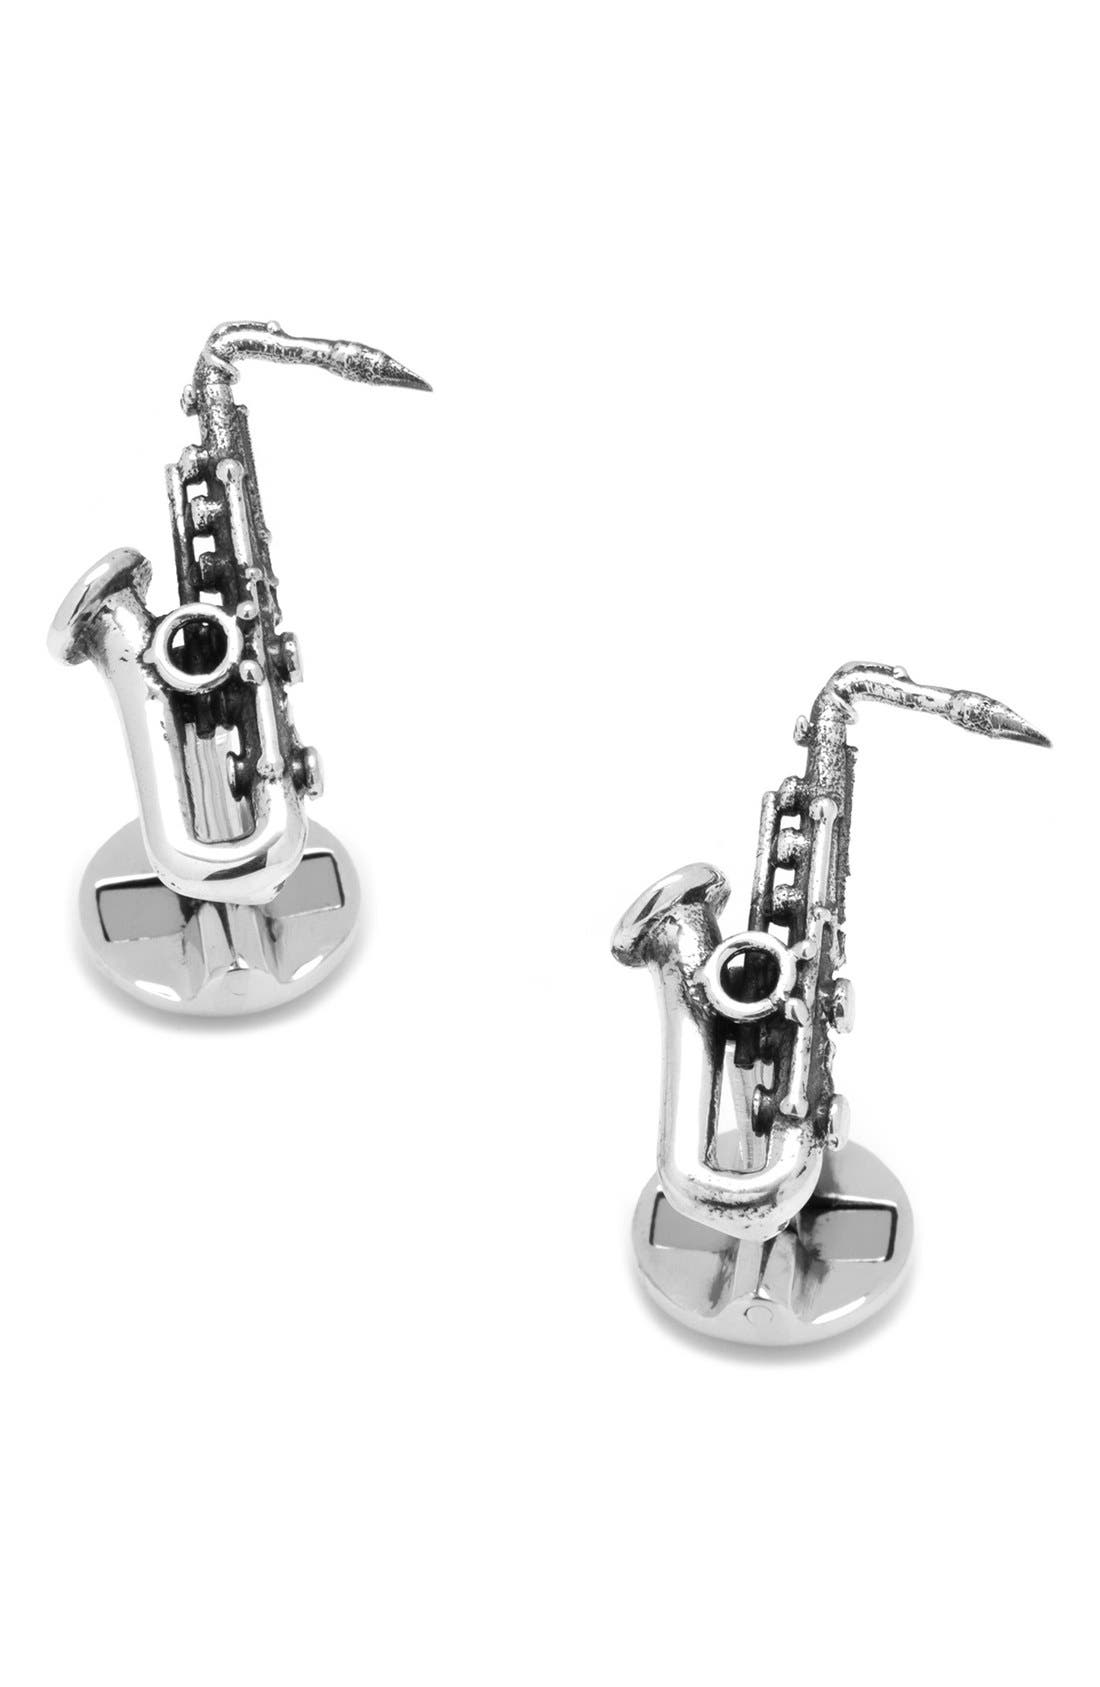 Alternate Image 1 Selected - Ox and Bull Trading Co. Saxophone Cuff Links